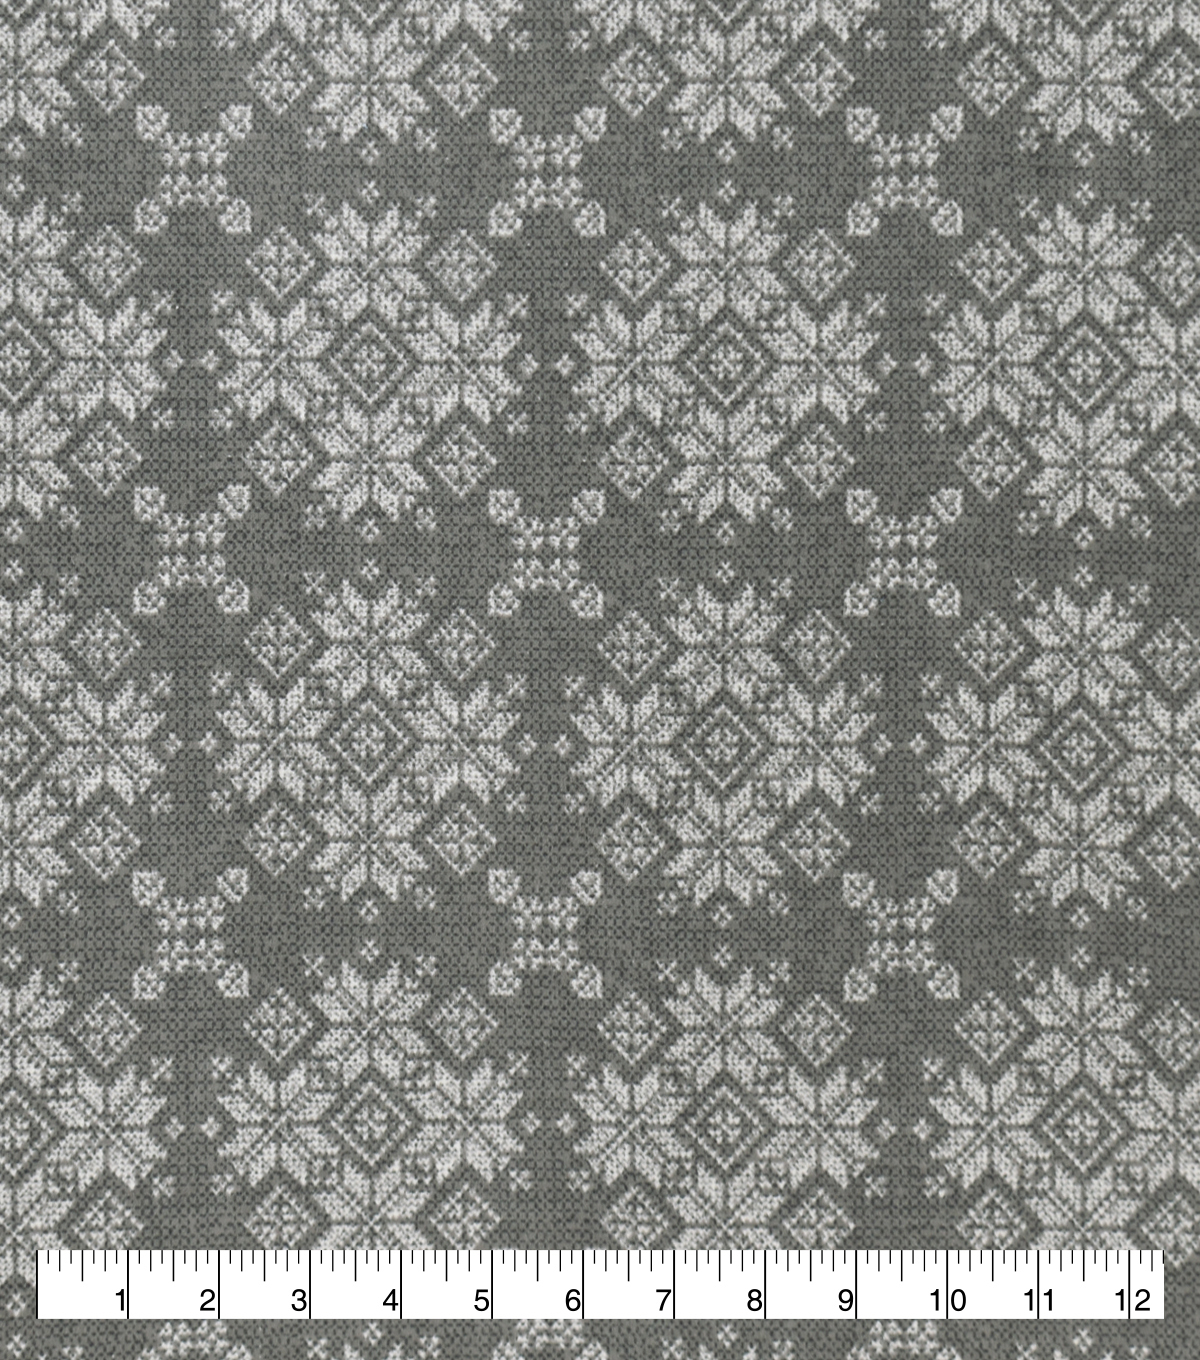 Snuggle Flannel Fabric-Gray Fairisle